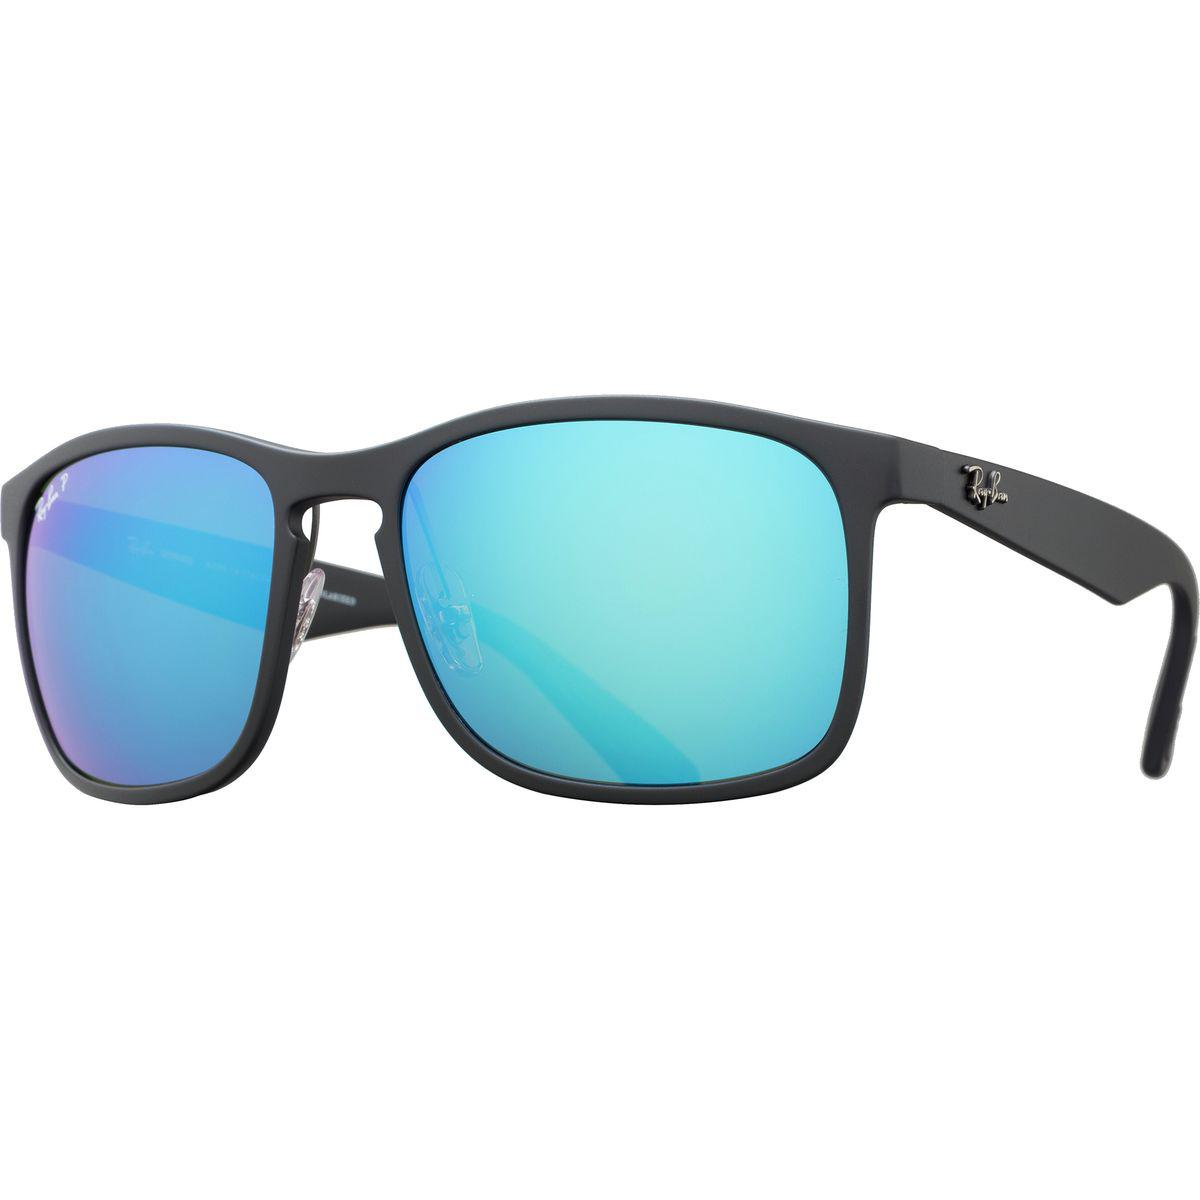 6630776f0c7 Lyst - Ray-Ban Rb4264 Chromance Sunglasses - Polarized in Blue for Men